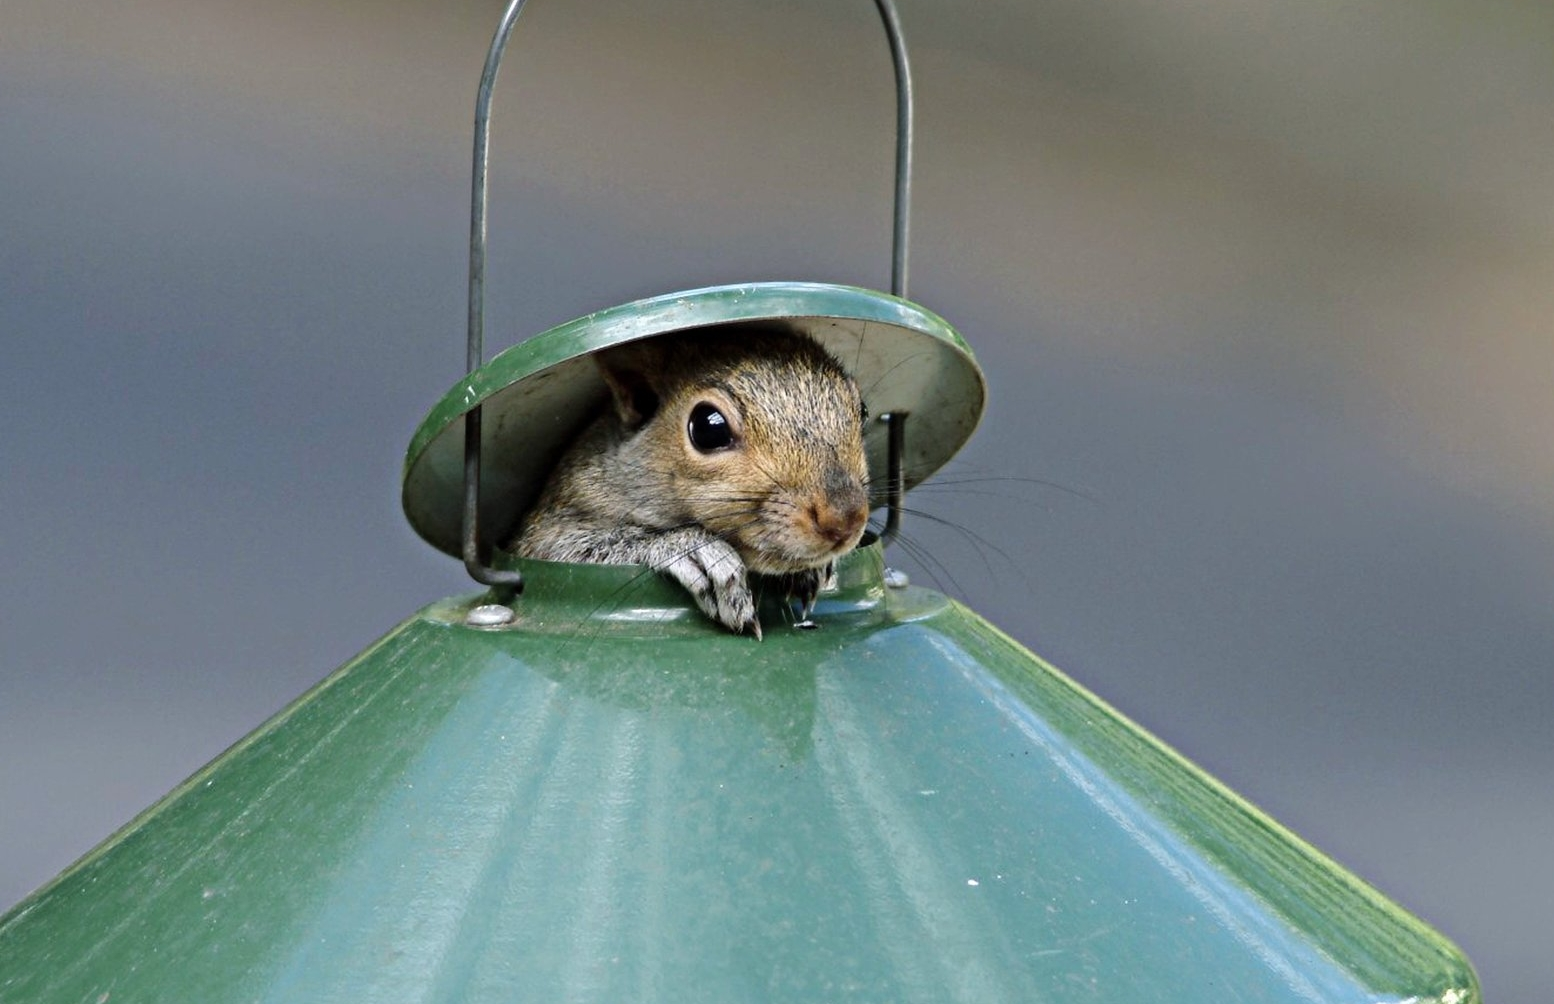 I so wish I could take credit for this shot but I can't. I left my camera on the tripod pointing at the bird feeder and went inside to make a cup of tea. While I was inside the house the squirrel popped his head up and my son Andrew saw it and rushed to the camera and took the shot for me.